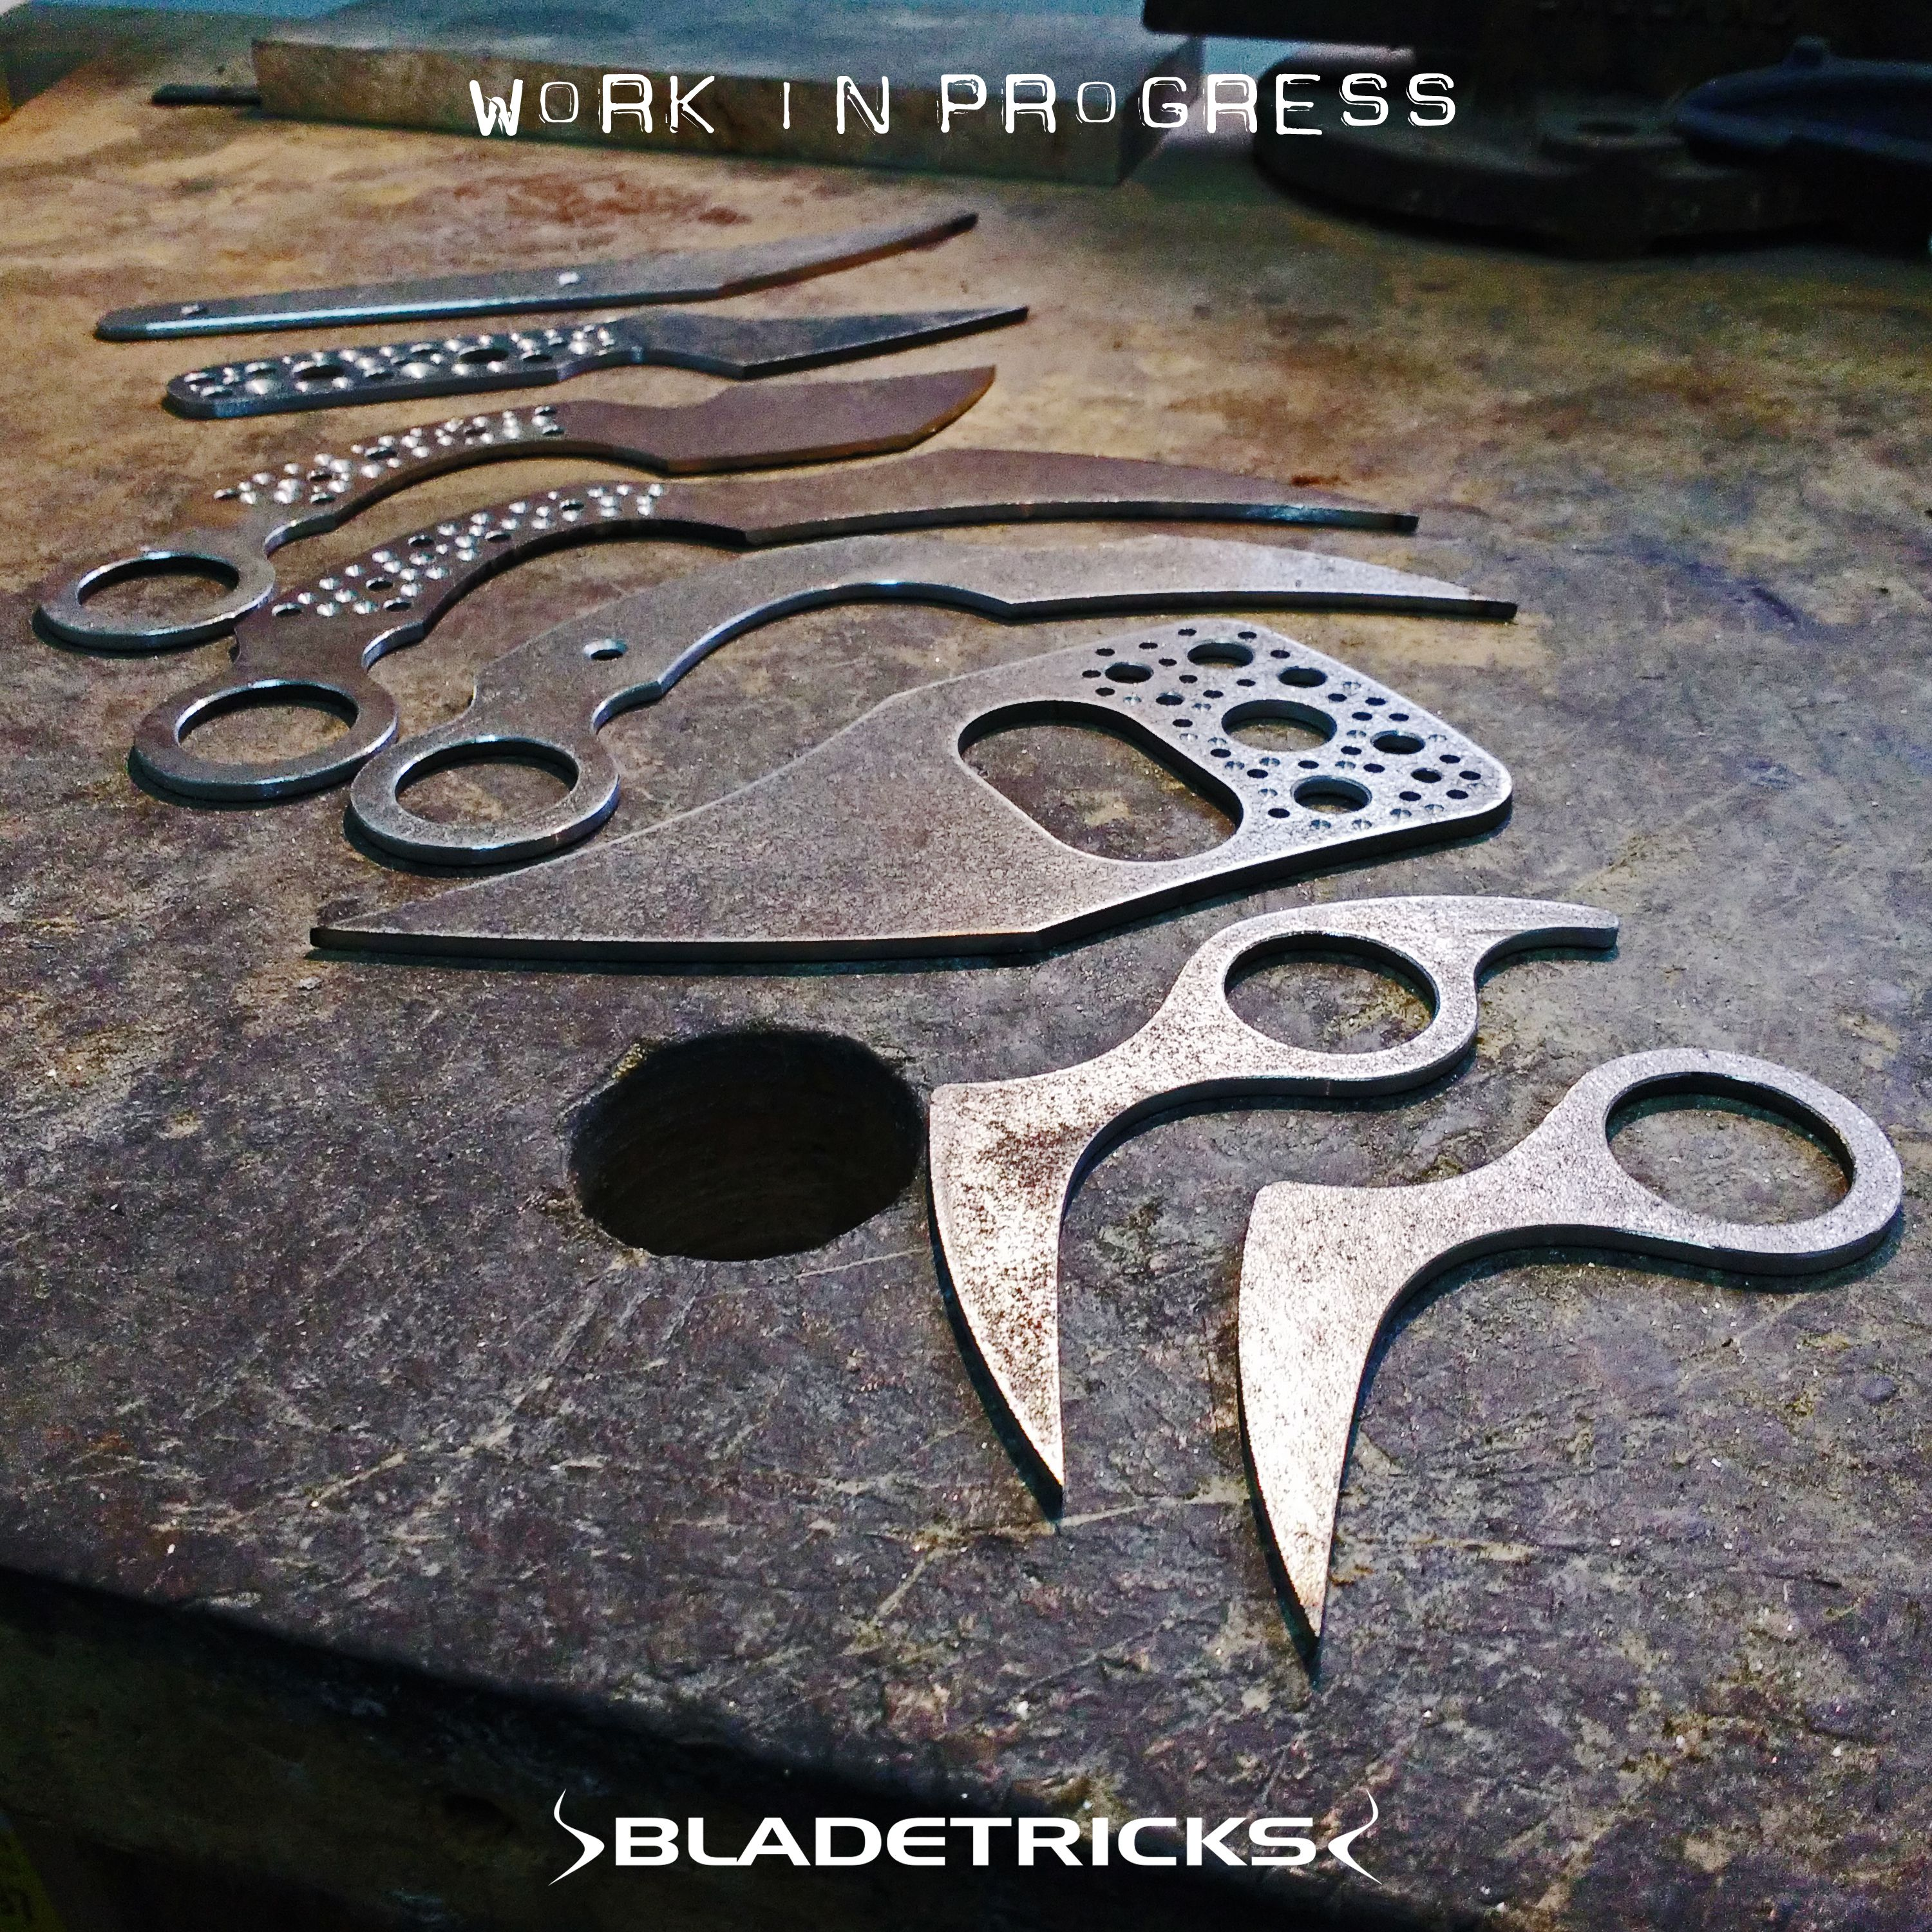 Ready for grinding some knives and karambits at the Bladetricks shop